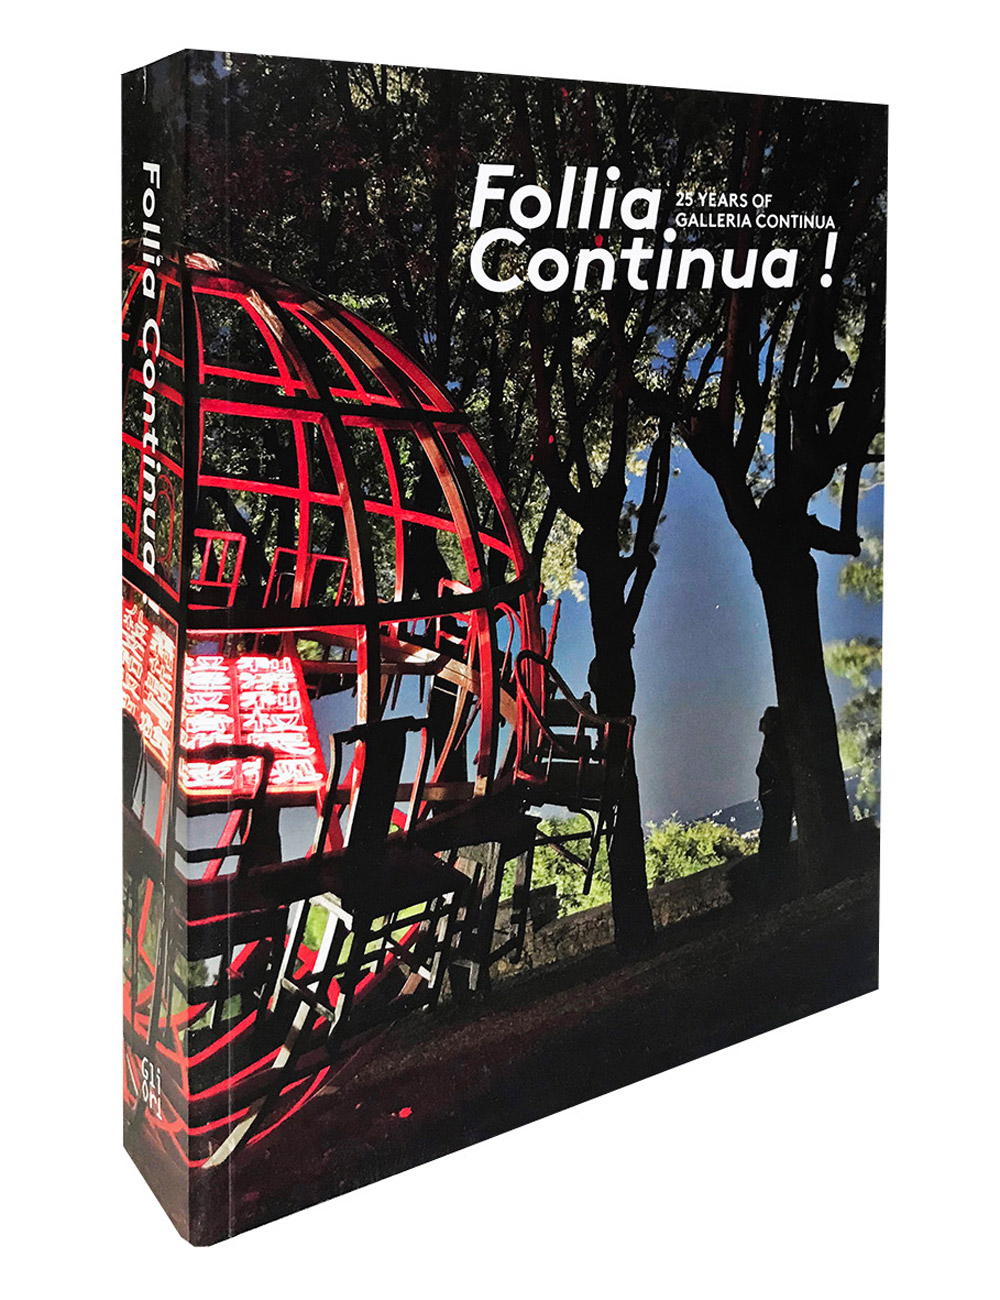 FOLLIA CONTINUA! 25 Years of Galleria Continua, 2015